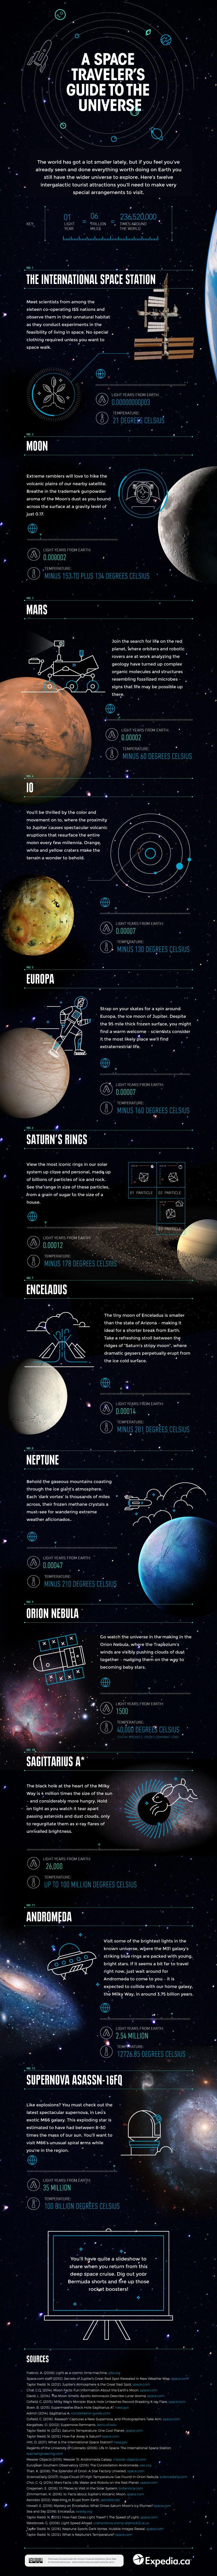 A Tourist Guide For Space Travelers! - Infographic